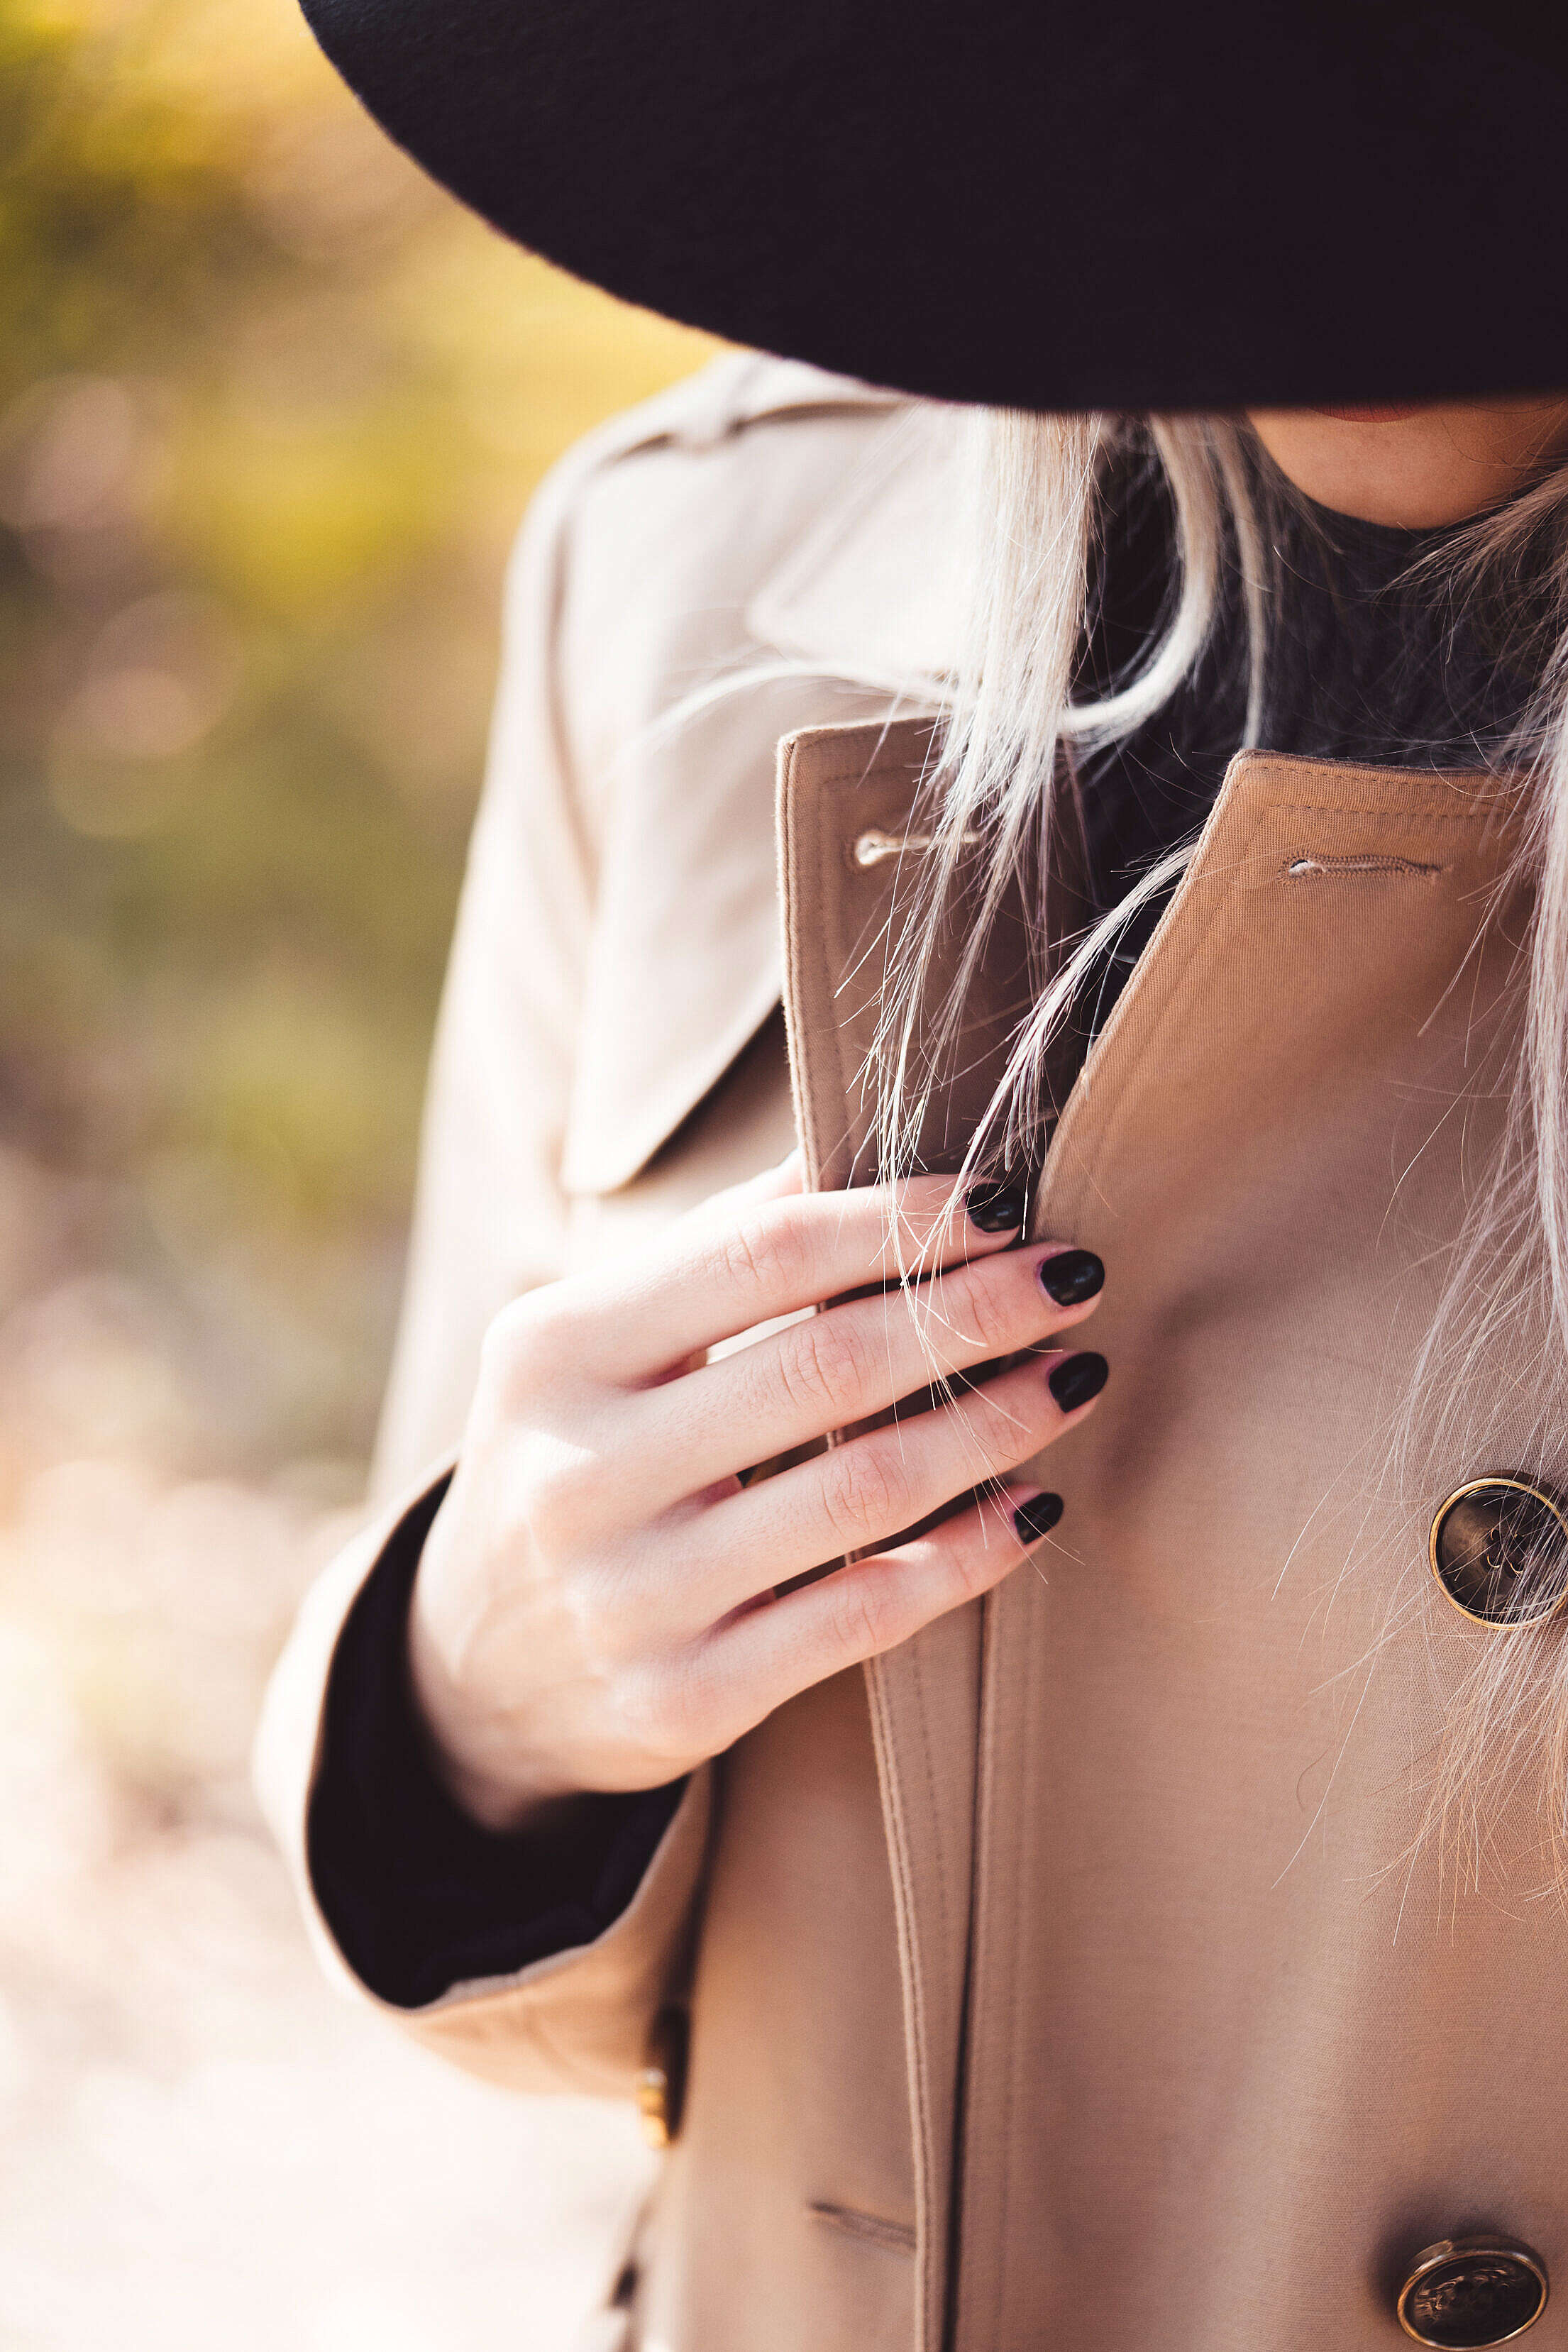 Woman in Trench Coat Free Stock Photo